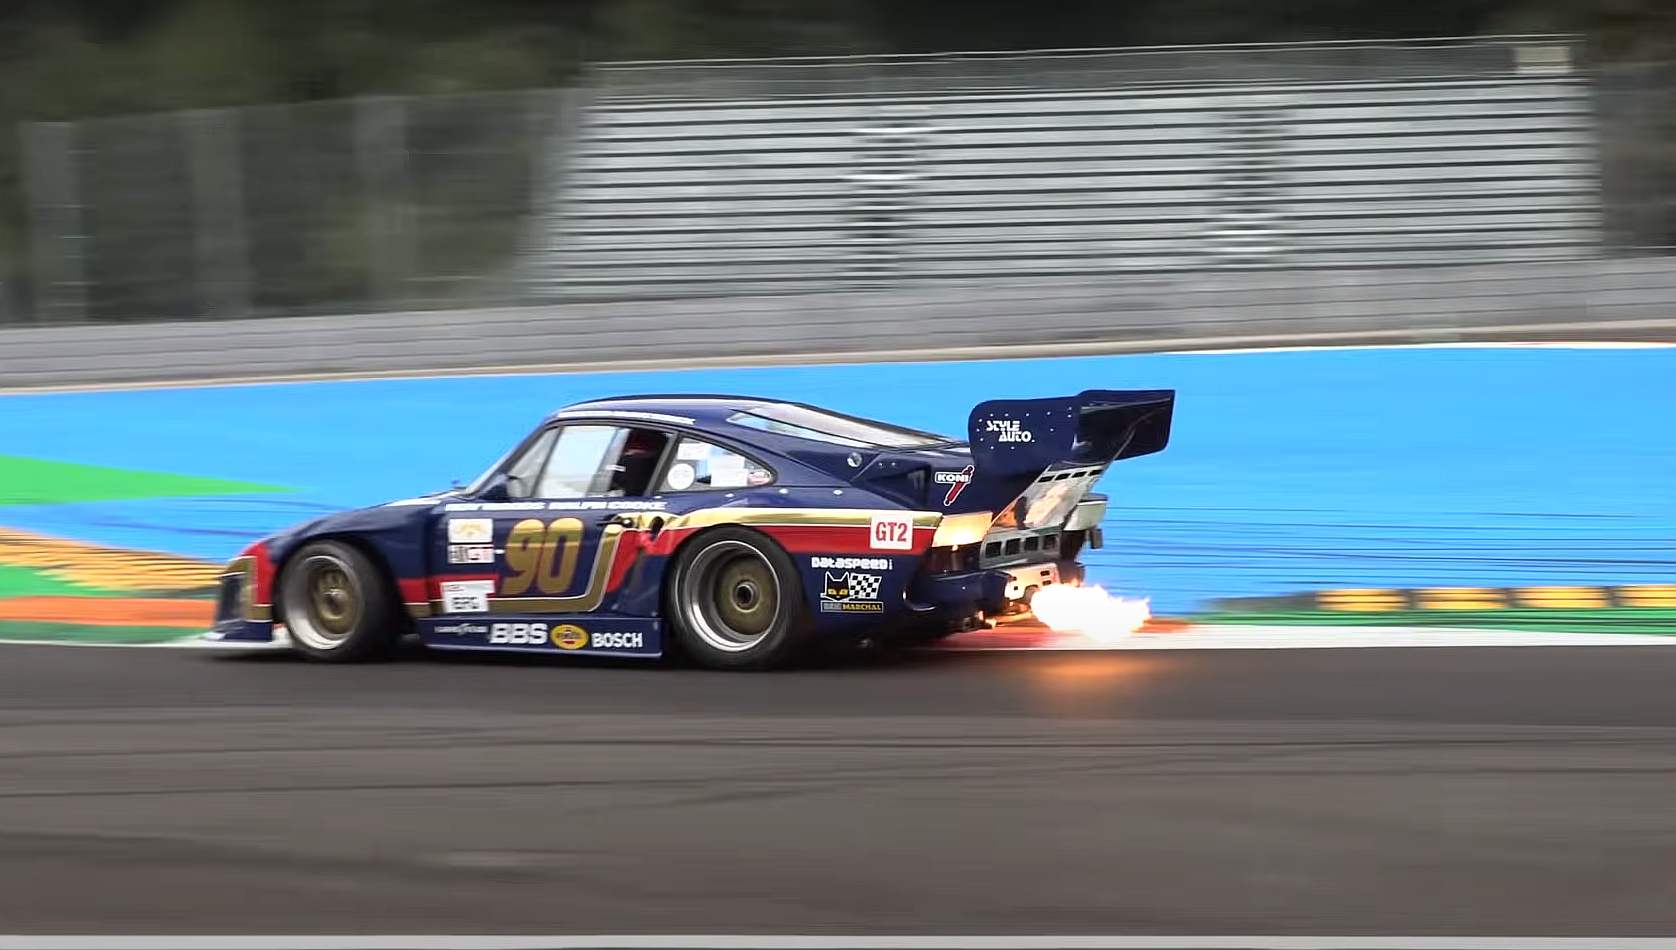 Feast Your Eyes on the Almighty Porsche 935 Kremer Spitting Flames at Monza